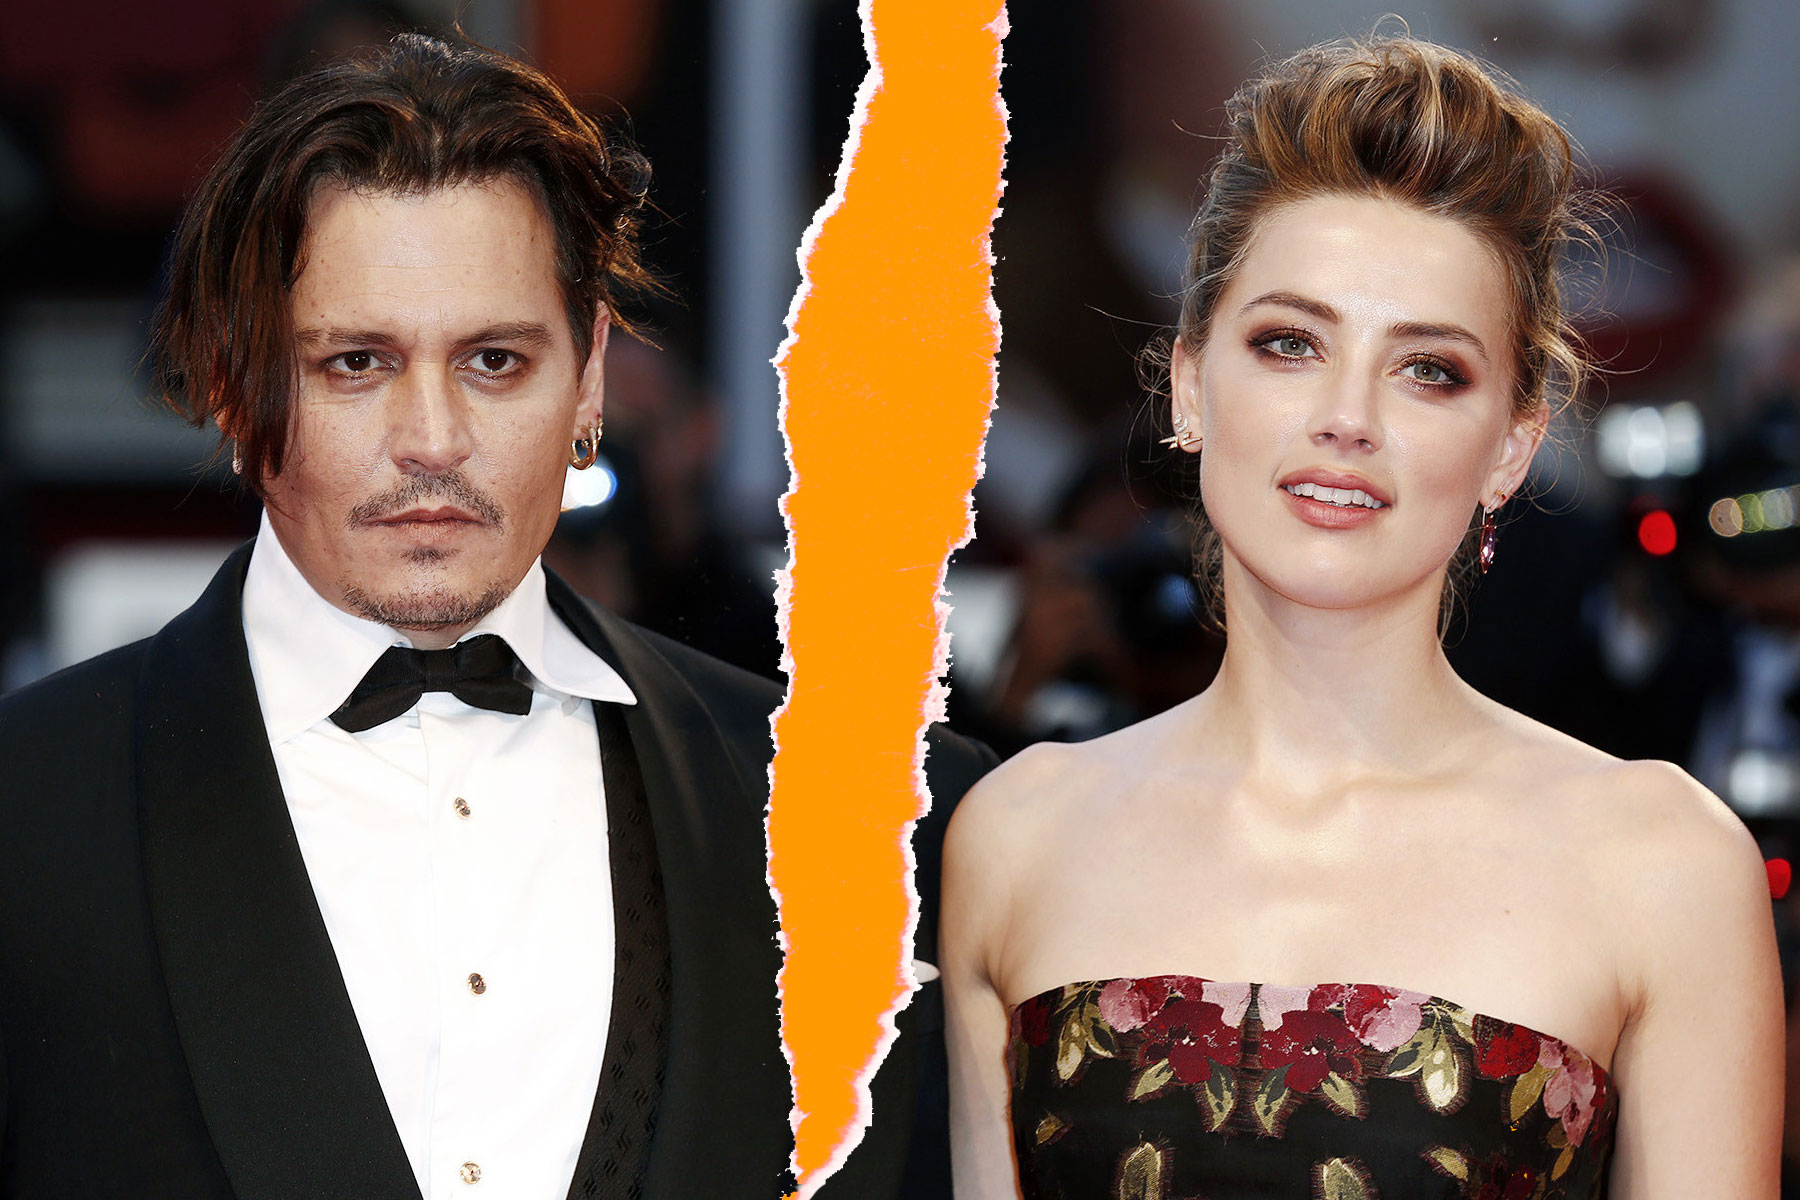 Photo of Johnny Depp-Amber Heard Divorce Drama: Here's What We Know